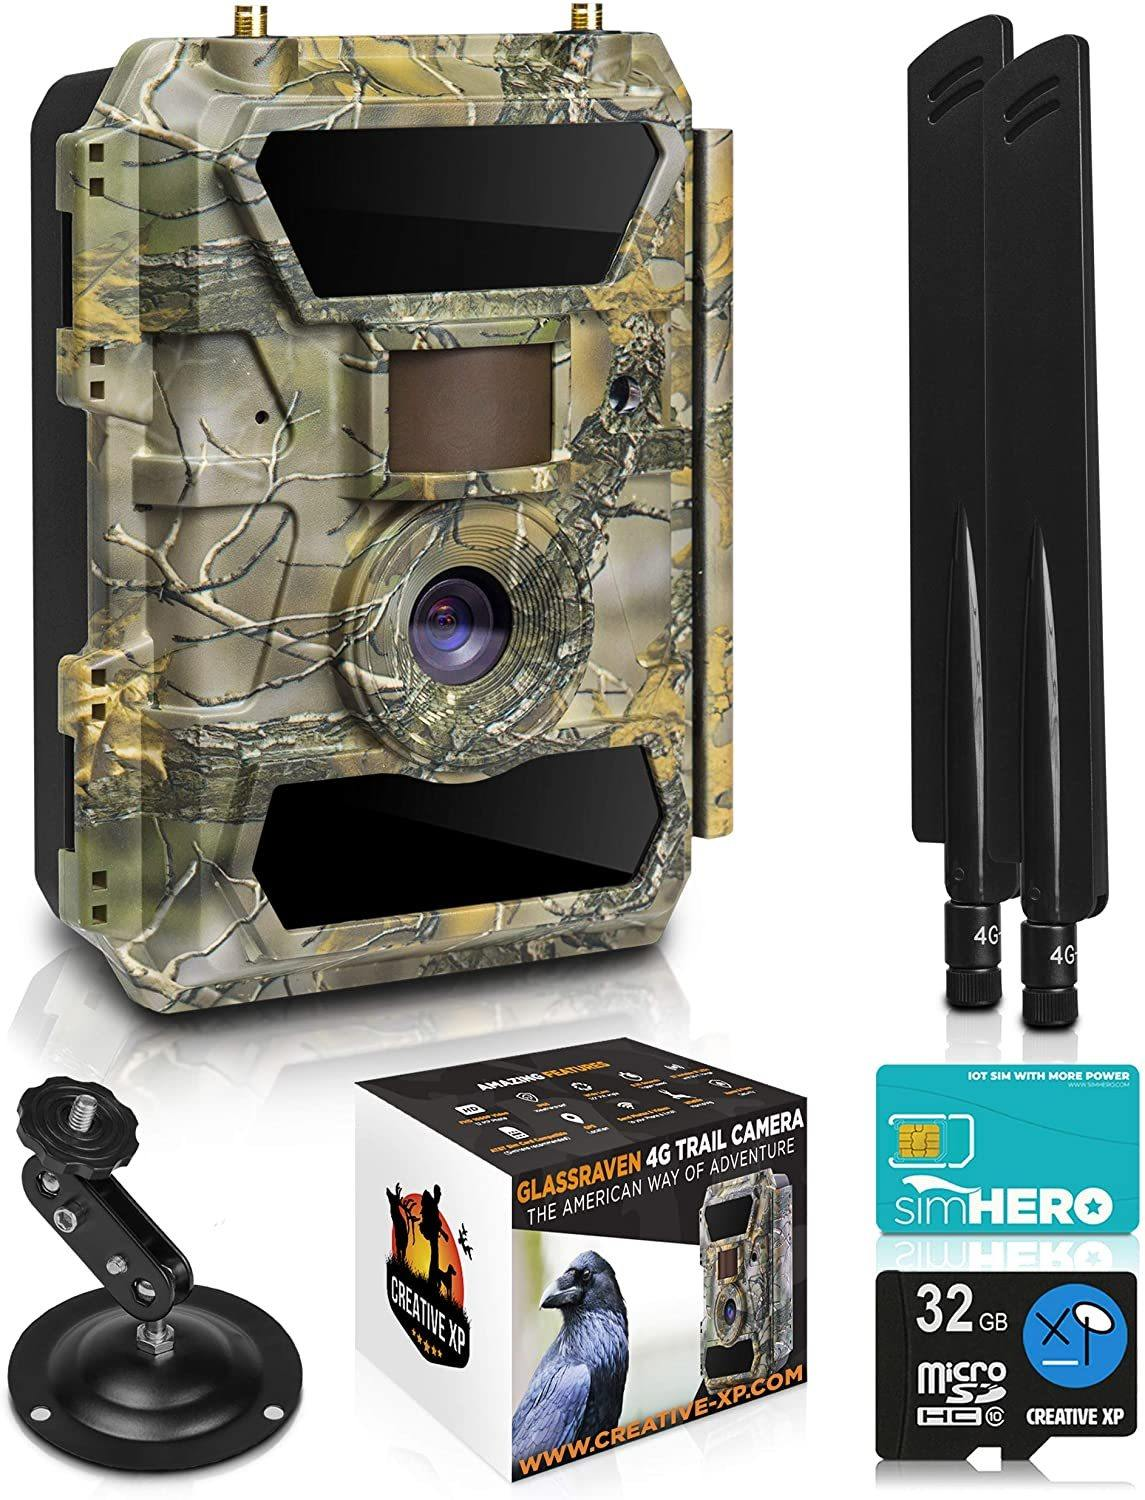 LTE 4G Cellular Trail Cameras – Outdoor WiFi Full HD Wild Game Camera with Night Vision